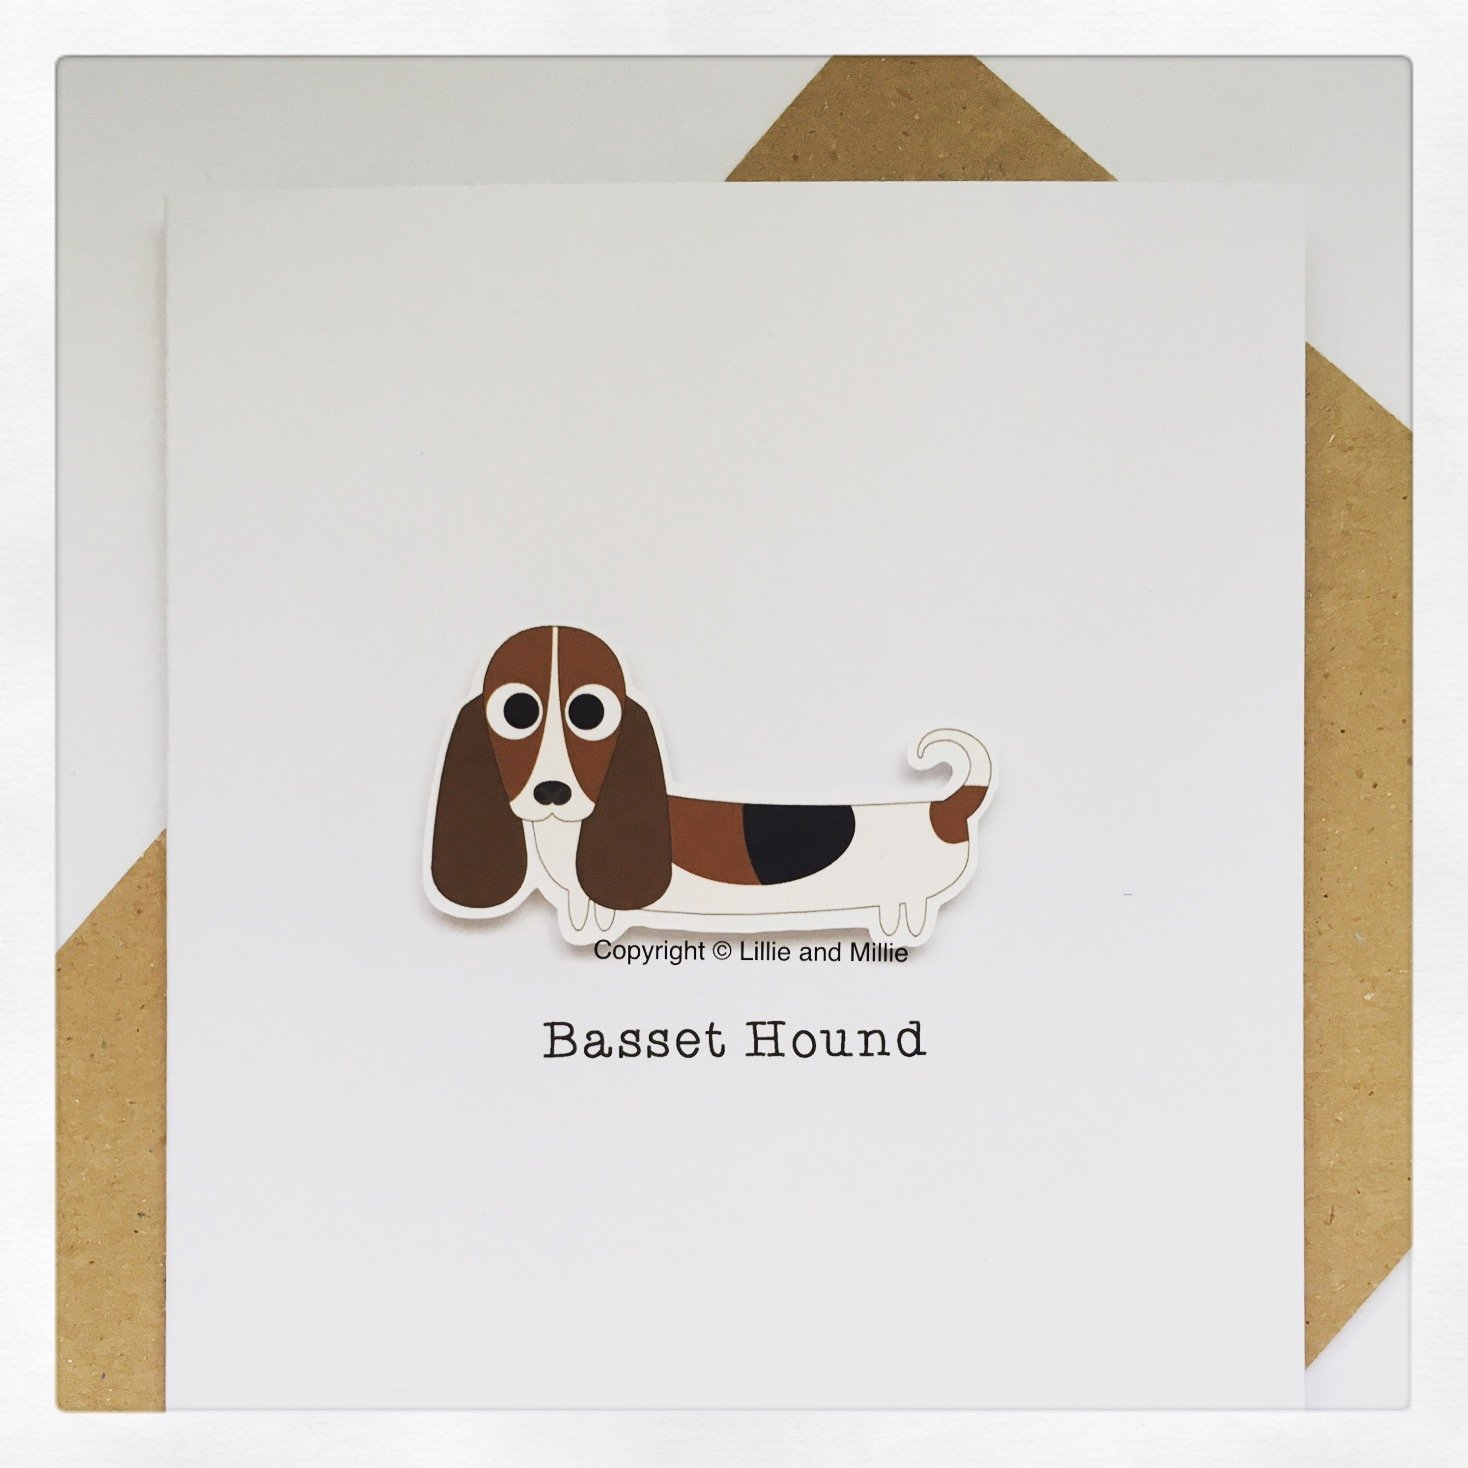 Basset Hound Dog Greeting Card